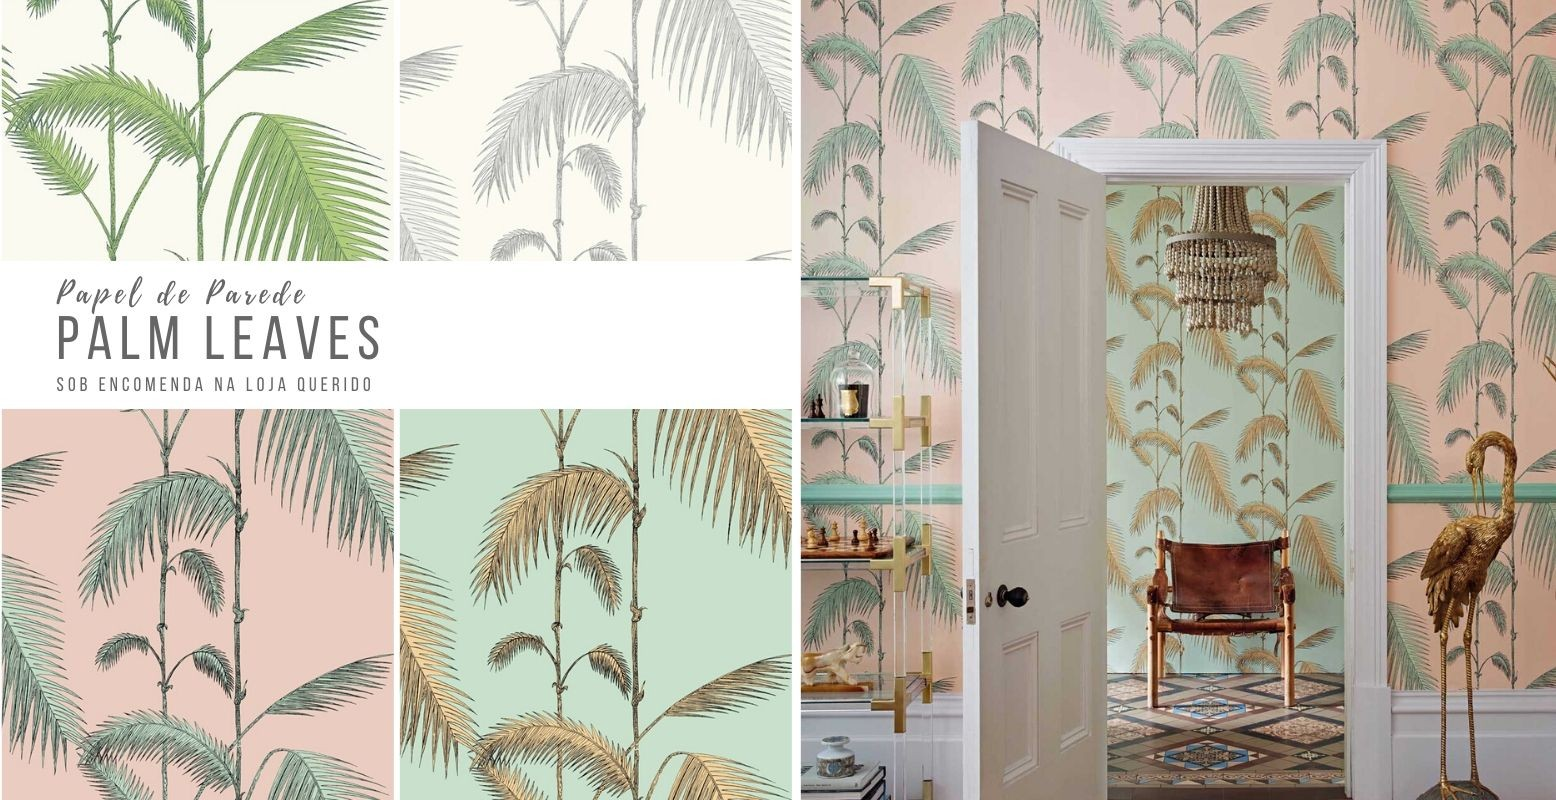 Papel de Parede Palm Leaves